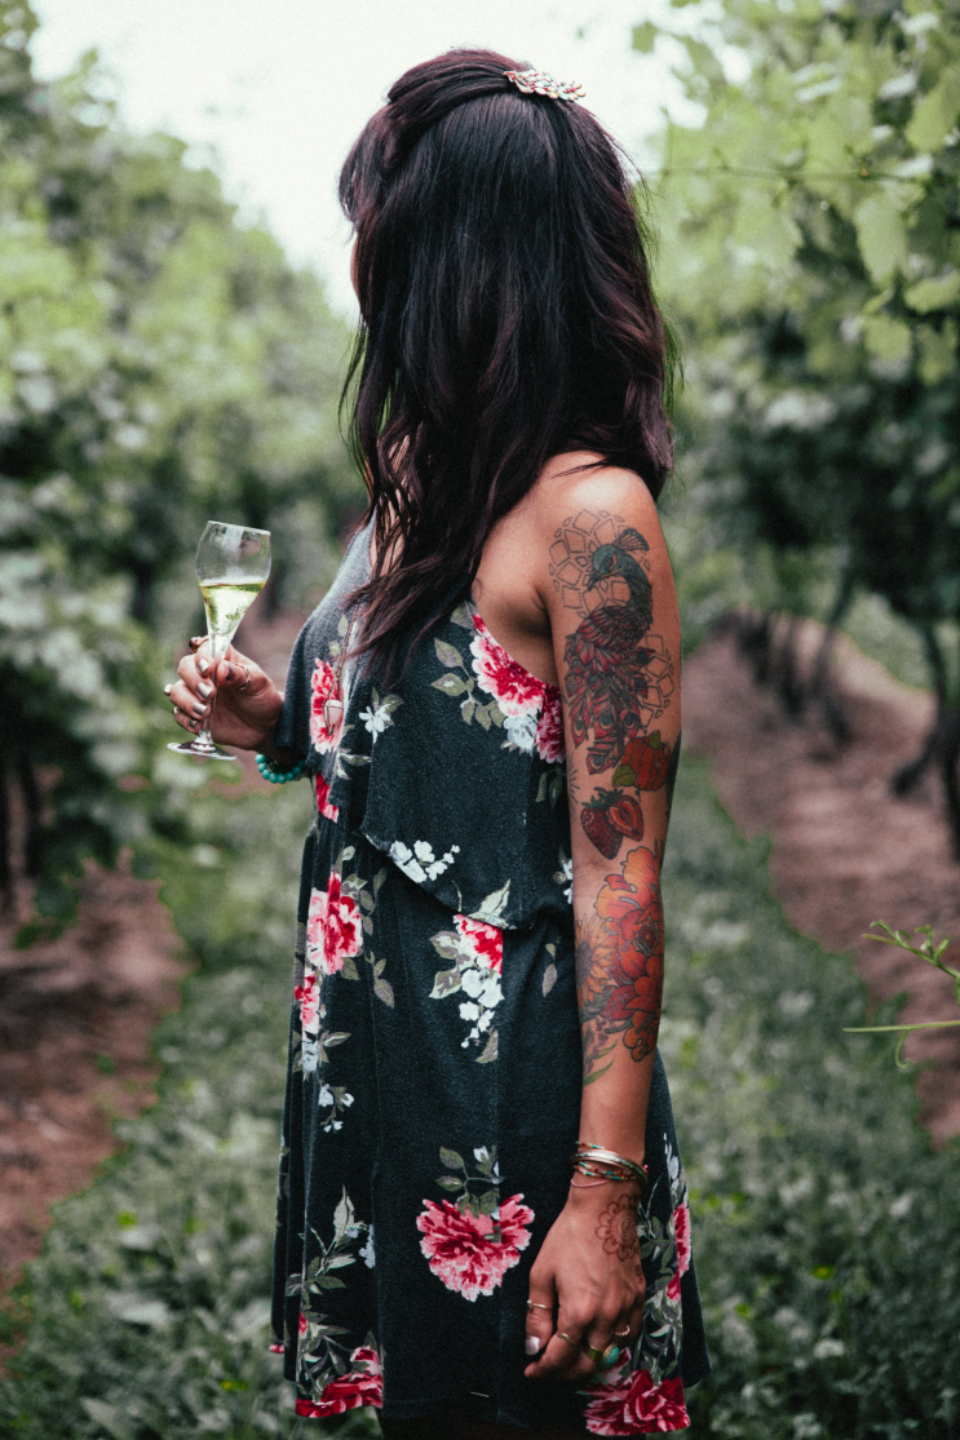 woman wine vineyard female lady person nature outdoors plants vegetation farm harvest drink alcohol taste summer glass enjoying leisure standing tattoo holding refreshment relaxing